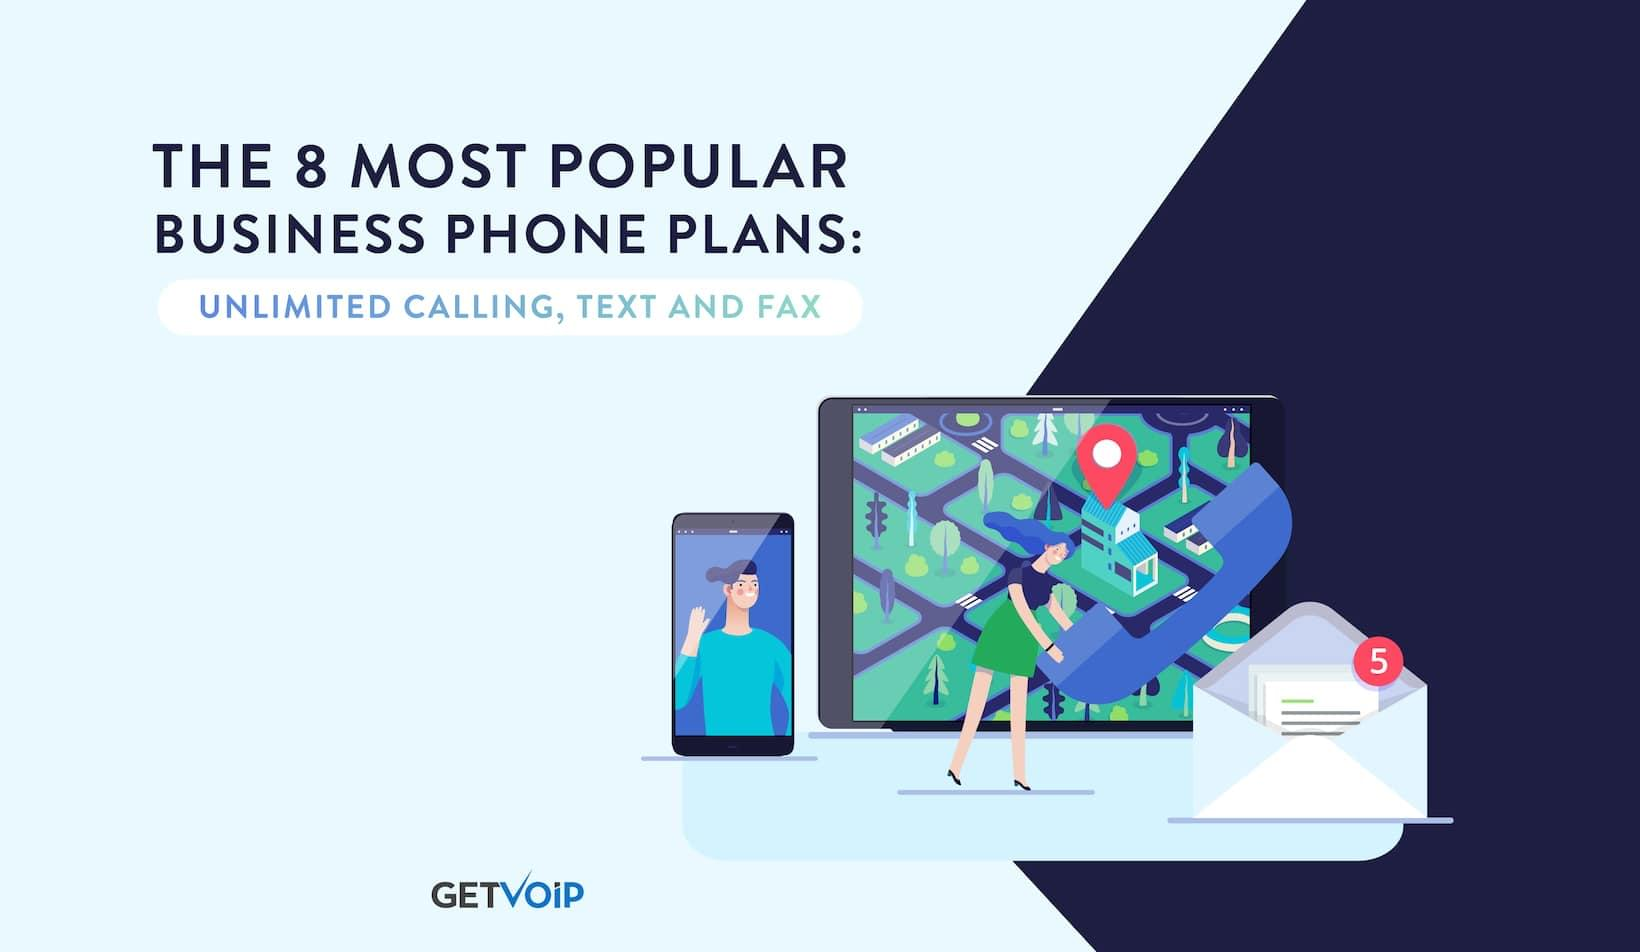 The 8 Most Popular Business Phone Plans with Unlimited Calling, Text and Fax